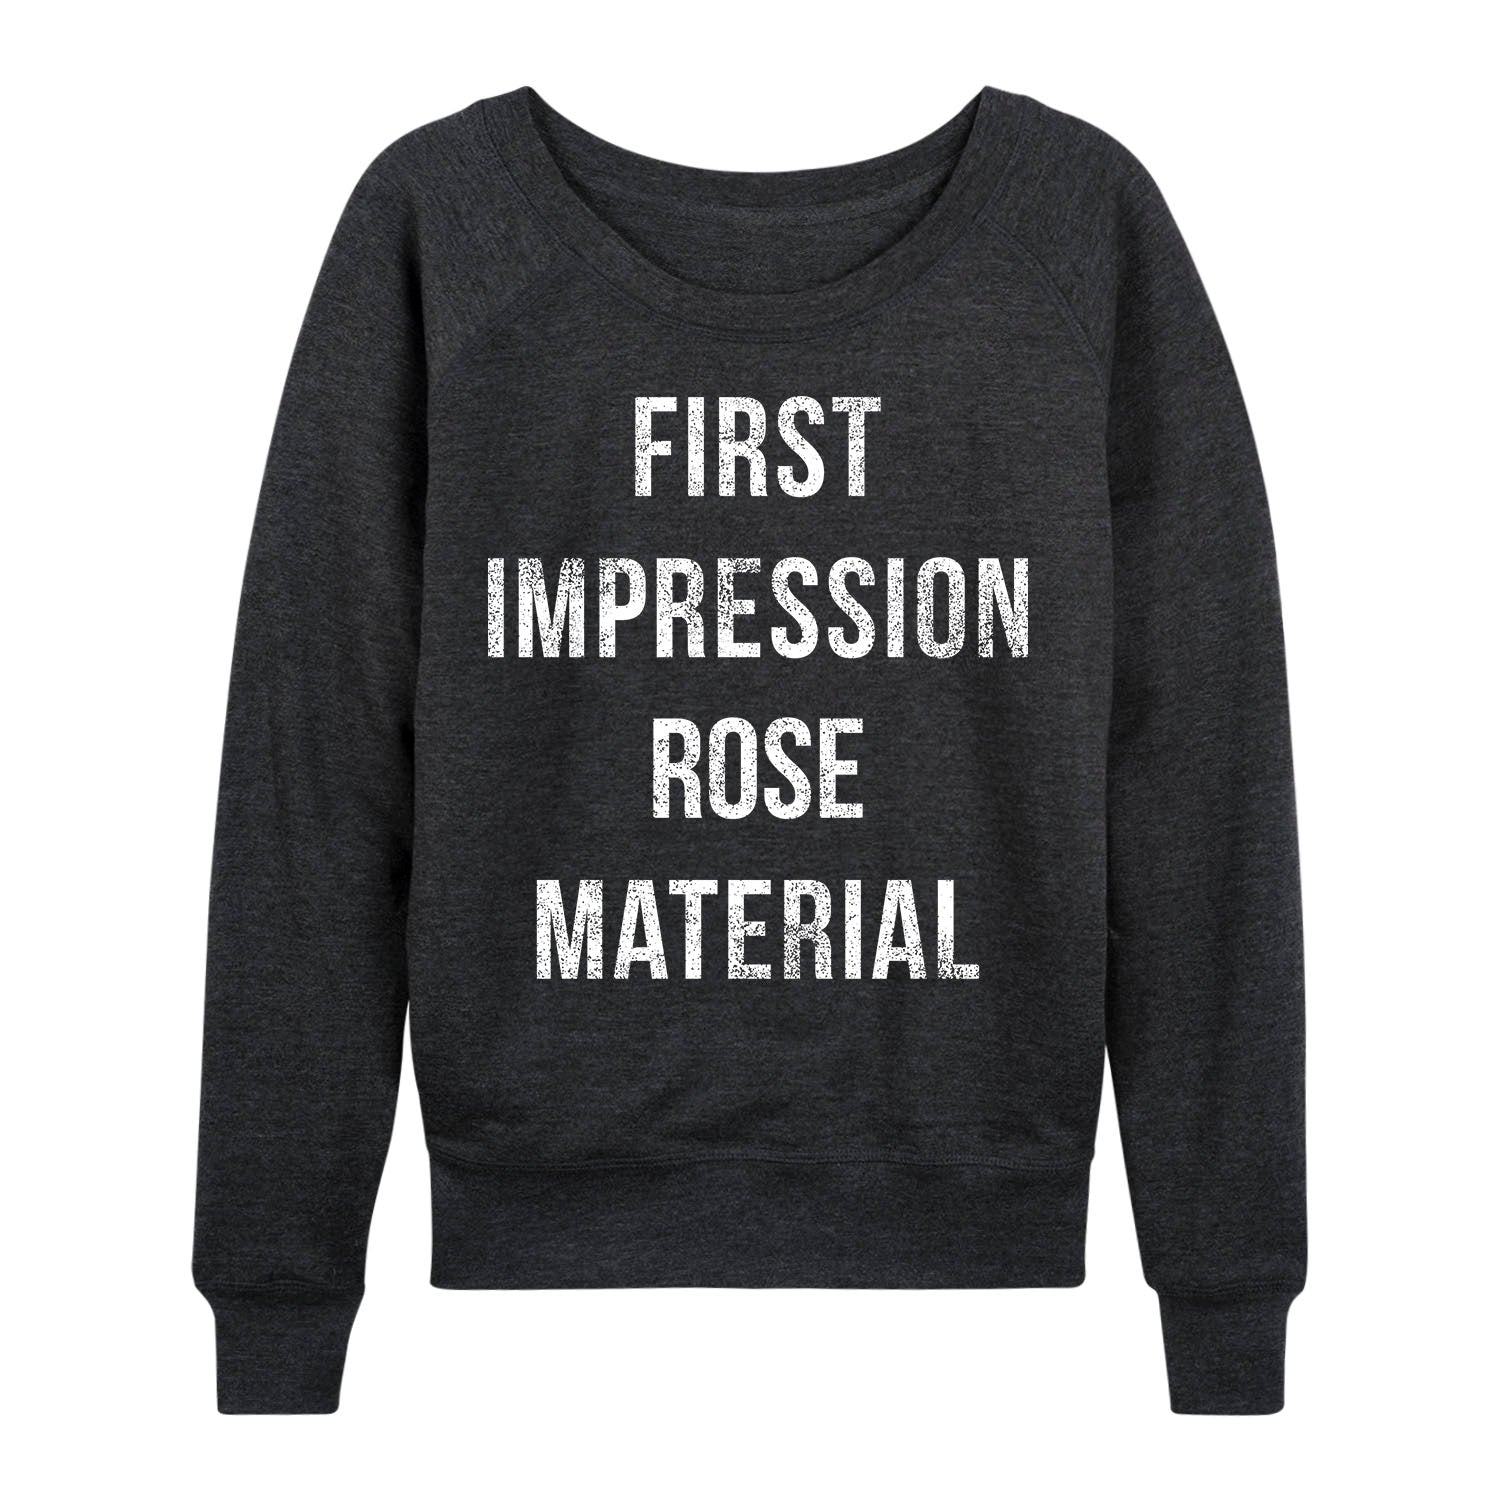 First Impression Rose Material - Women's Slouchy